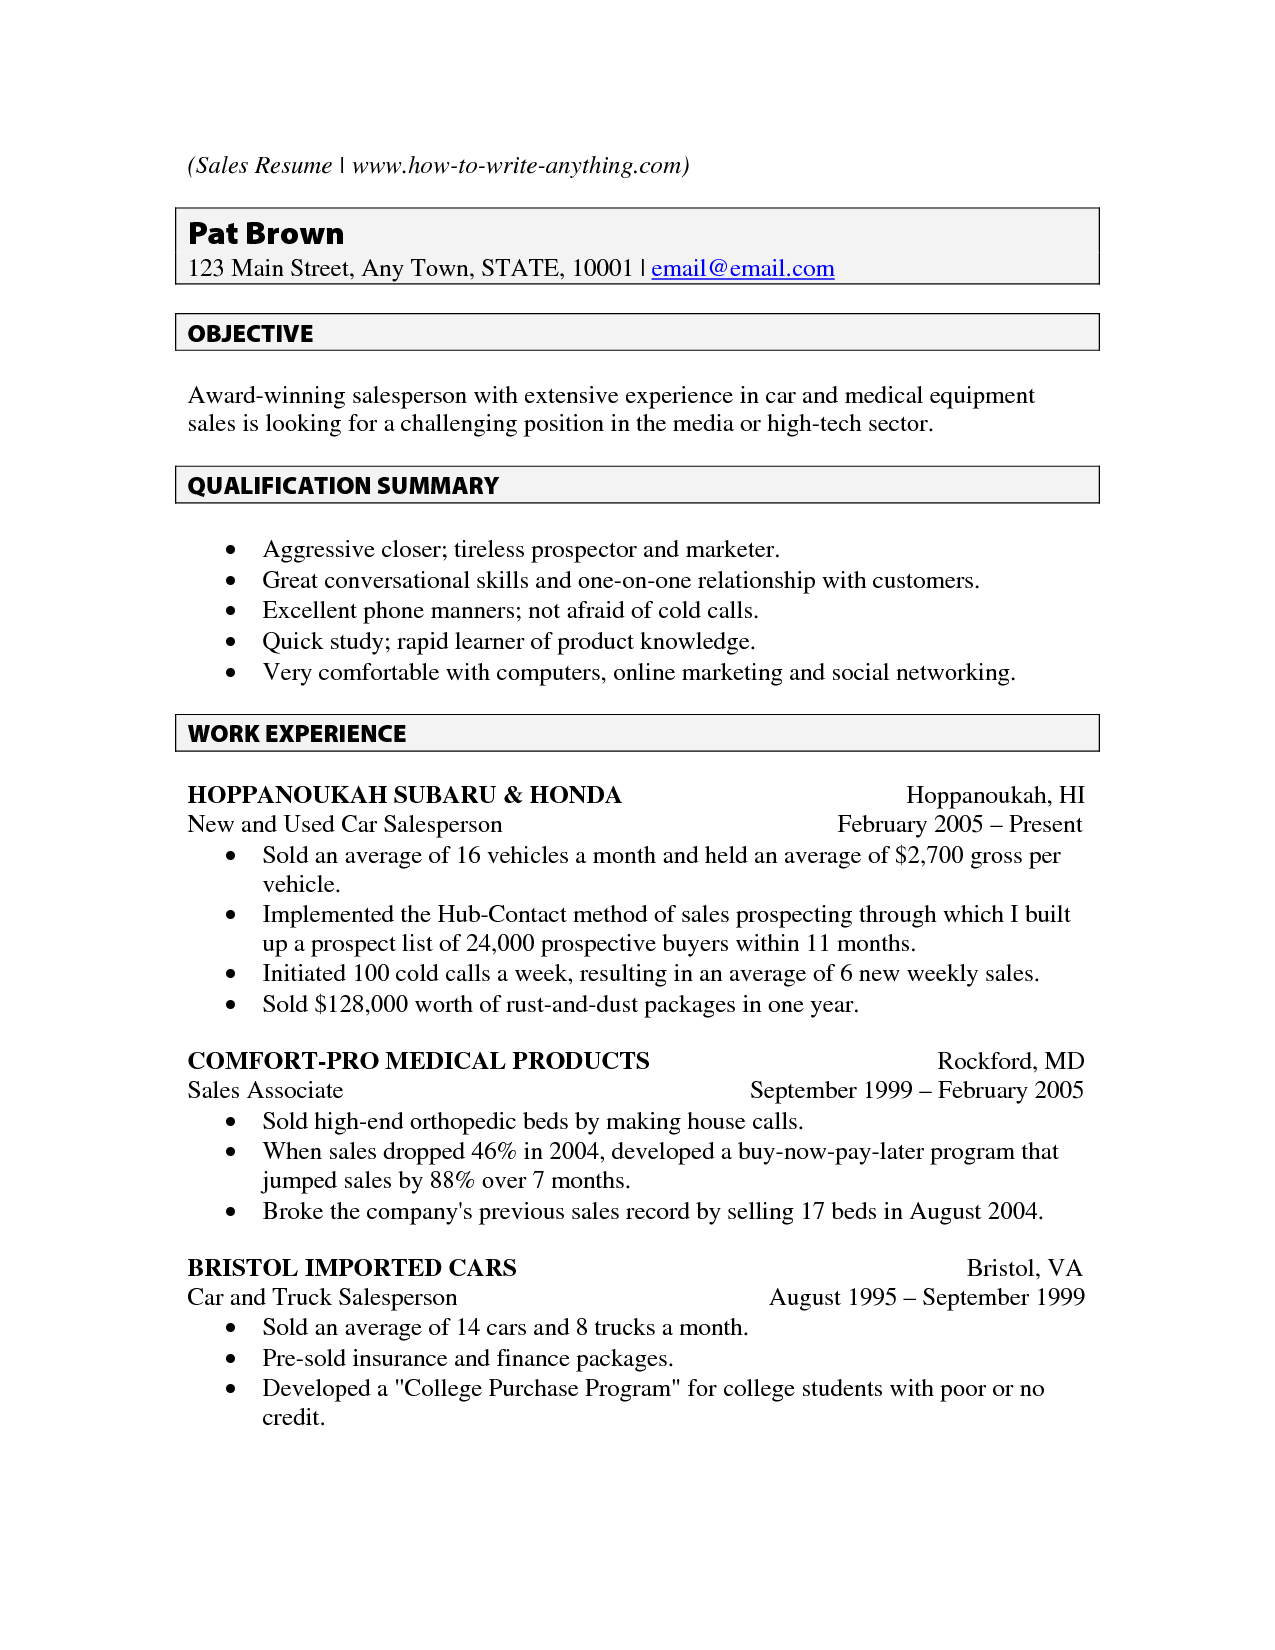 Sample Resume Summary Statement Programmer Resume Sample  Resume  Pinterest  Resume Examples